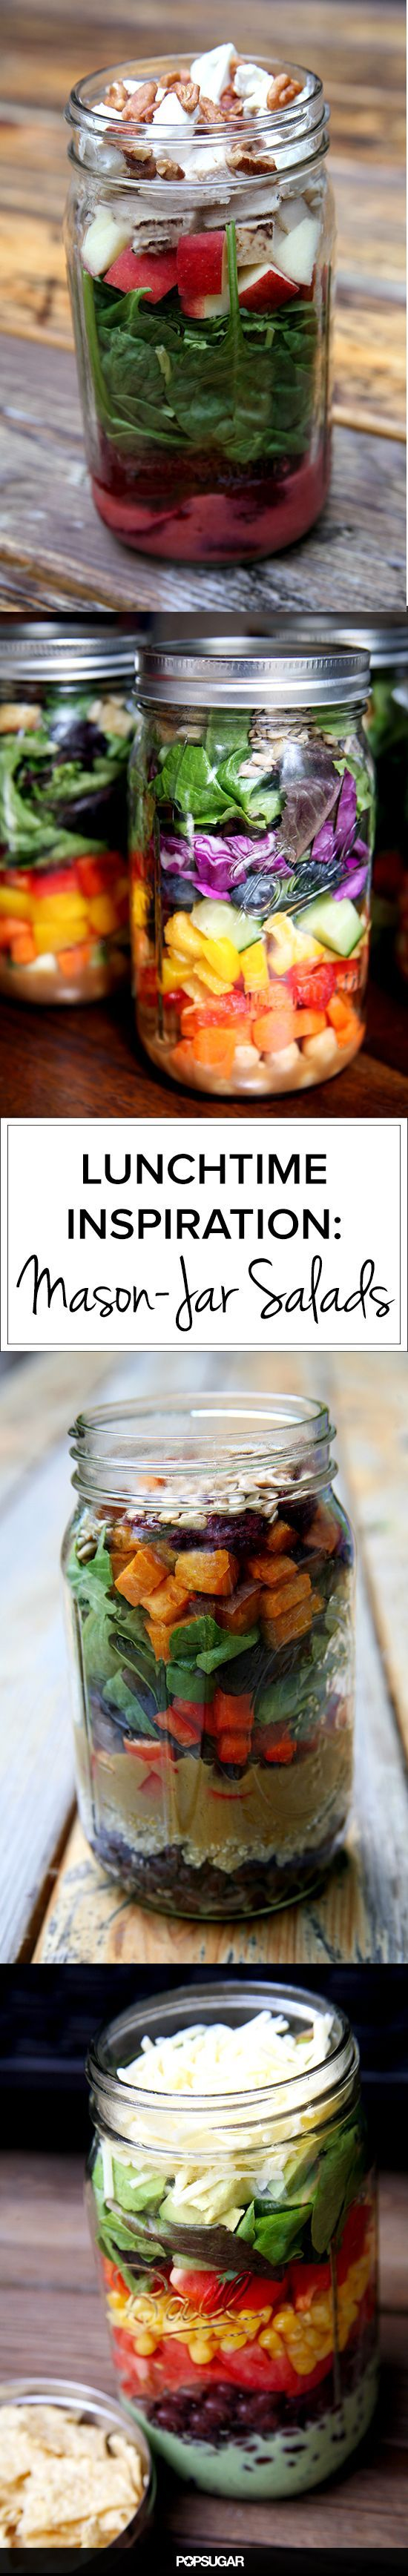 20 Salads in a Jar That Will Make You Want to Eat Healthier